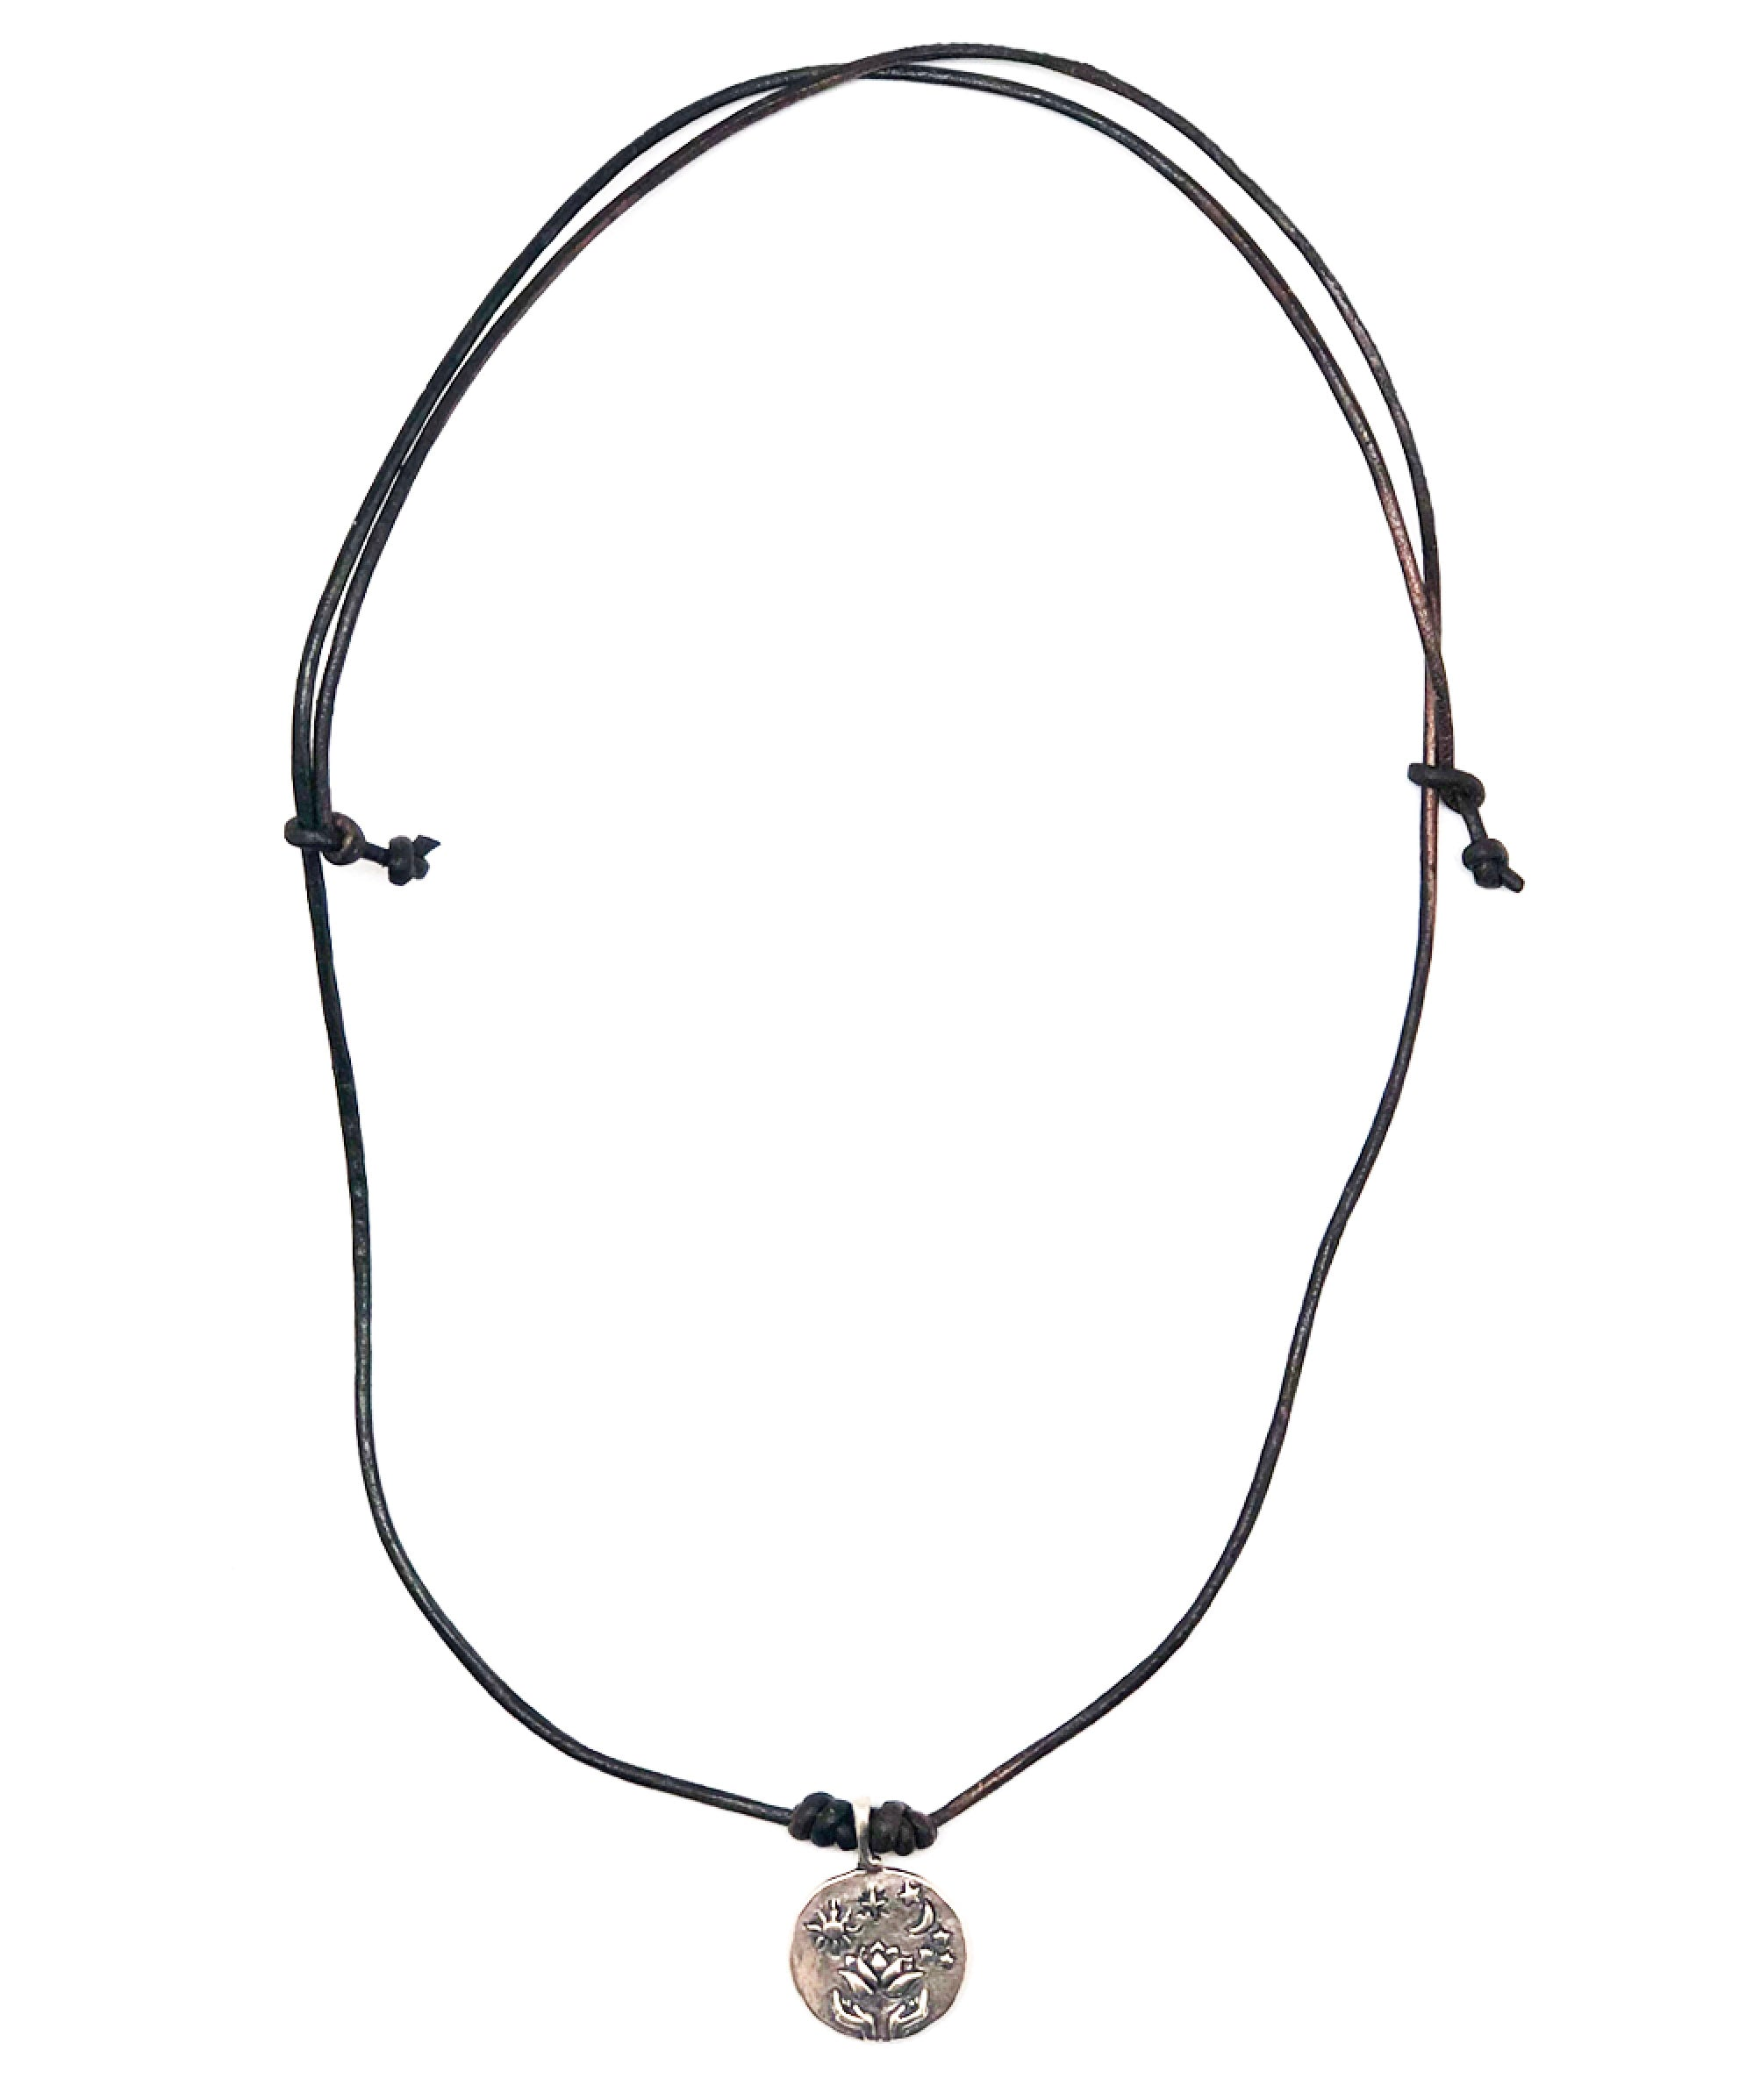 Collier Life argent - Catherine Michiels